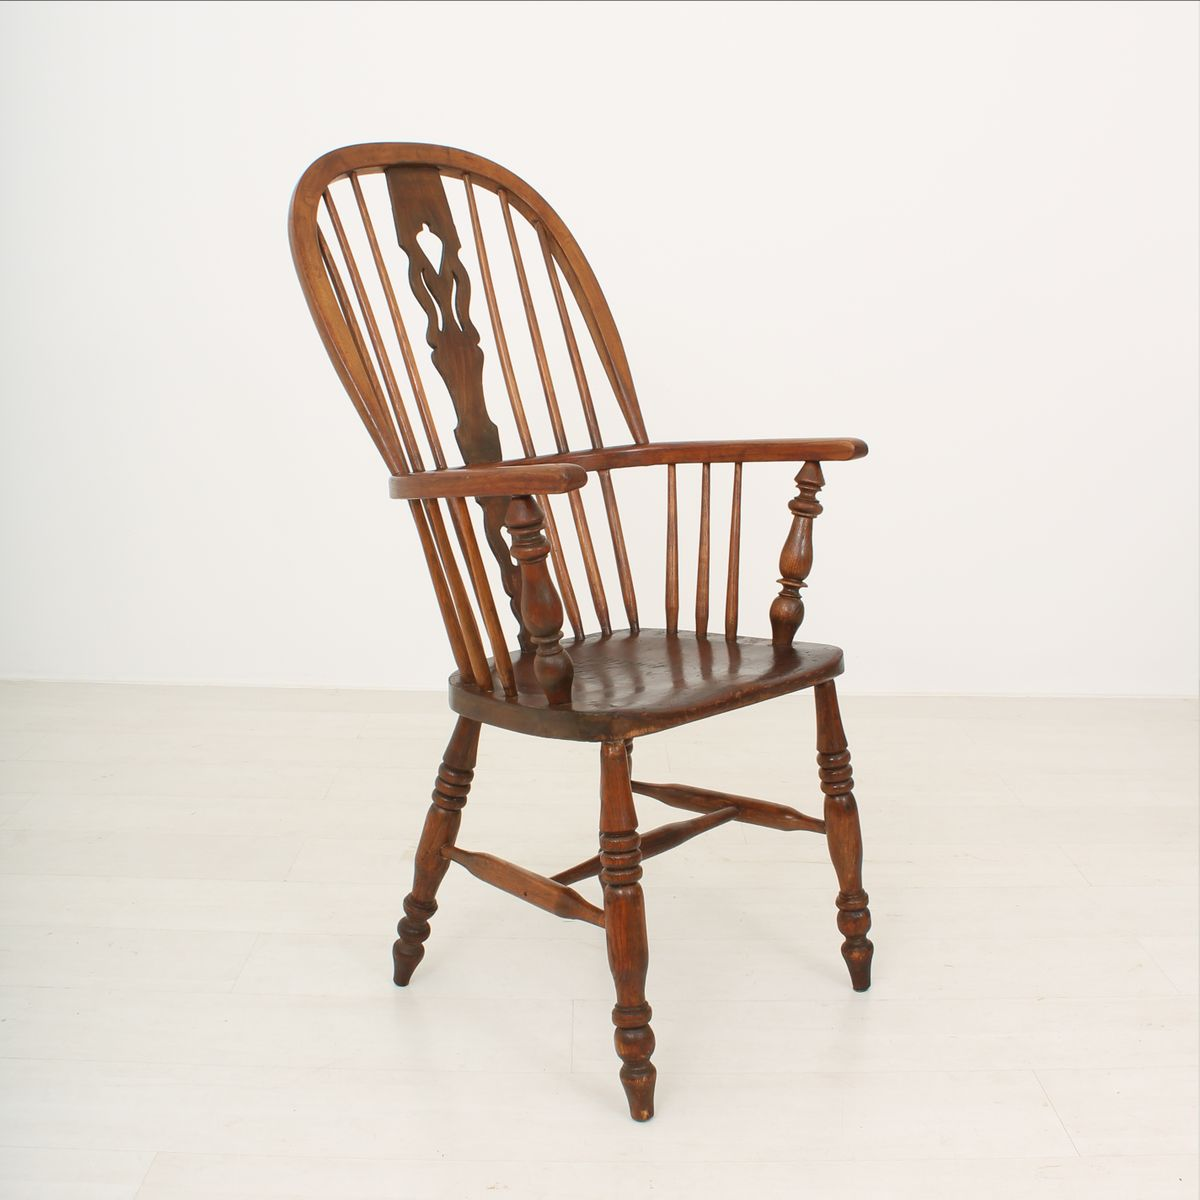 antique windsor chairs for sale midcentury modern chair at pamono